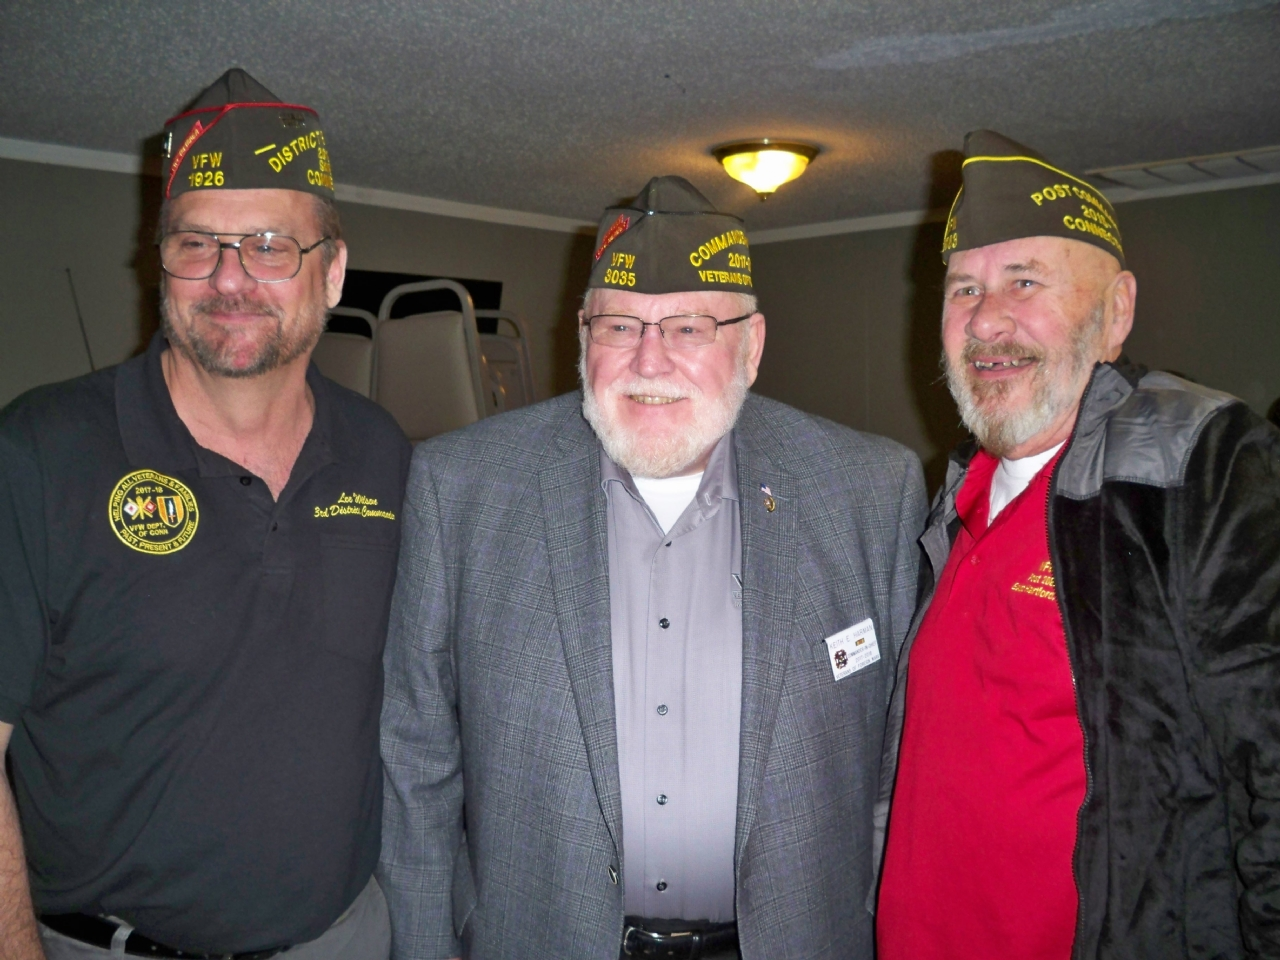 Lee Wilson, 3rd District Commander